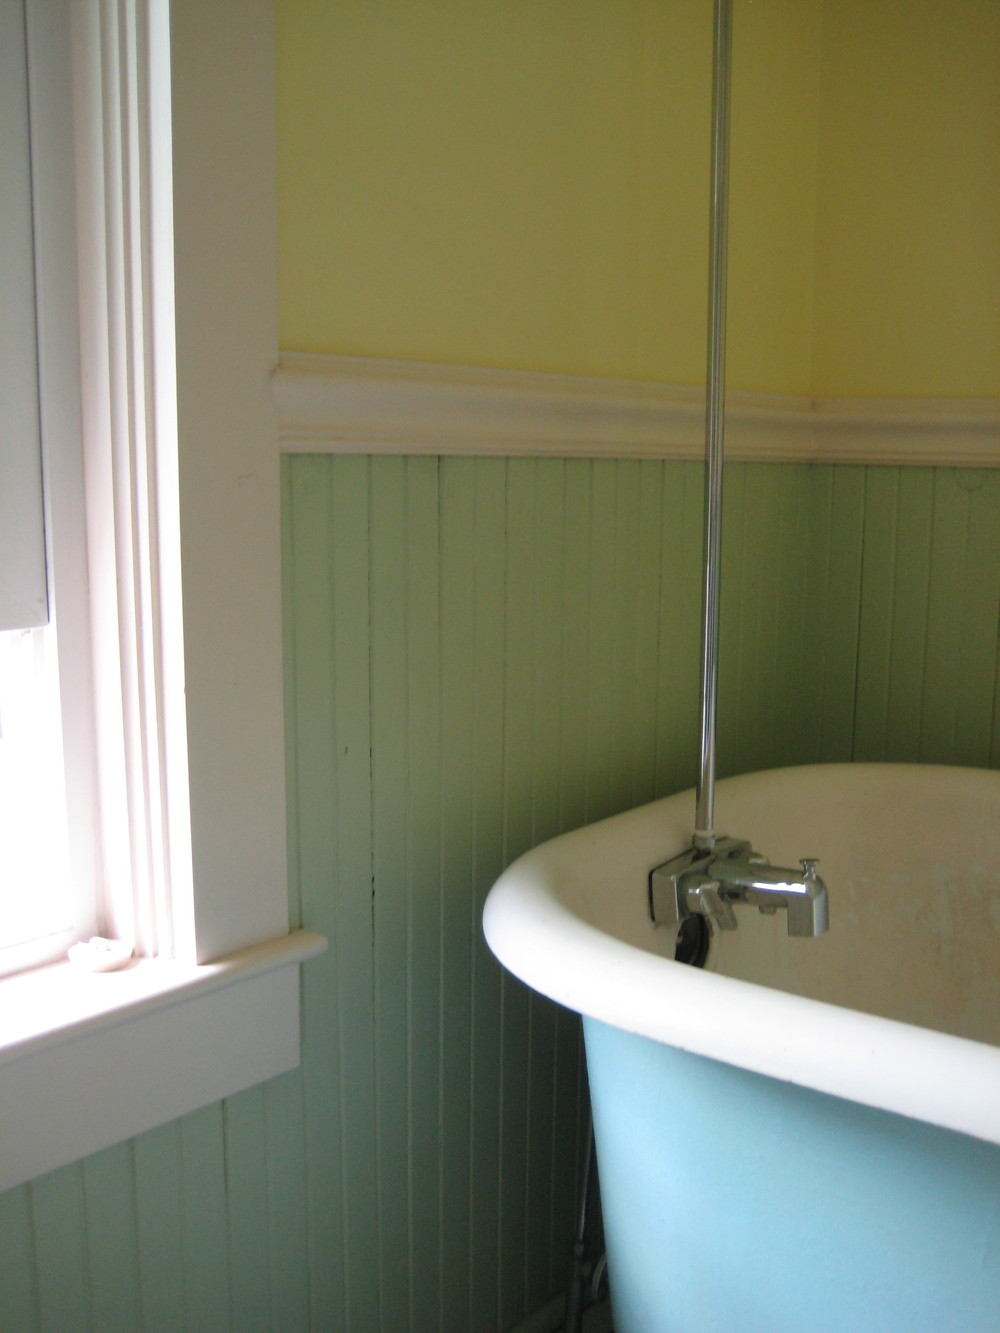 woodruff bath I.jpg